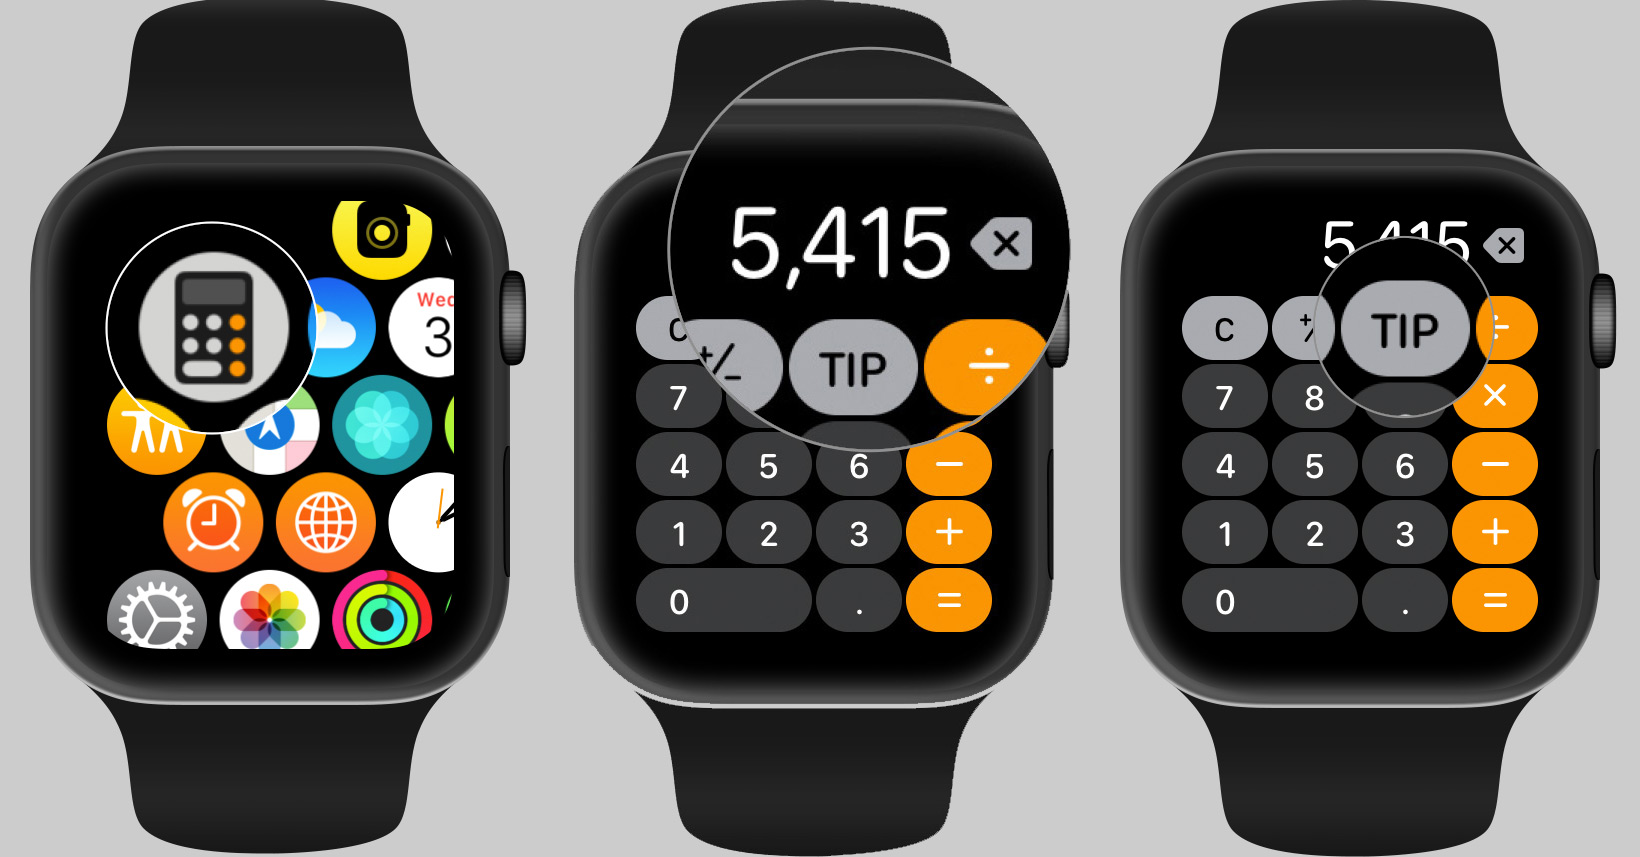 How to use the Apple Watch calculator app